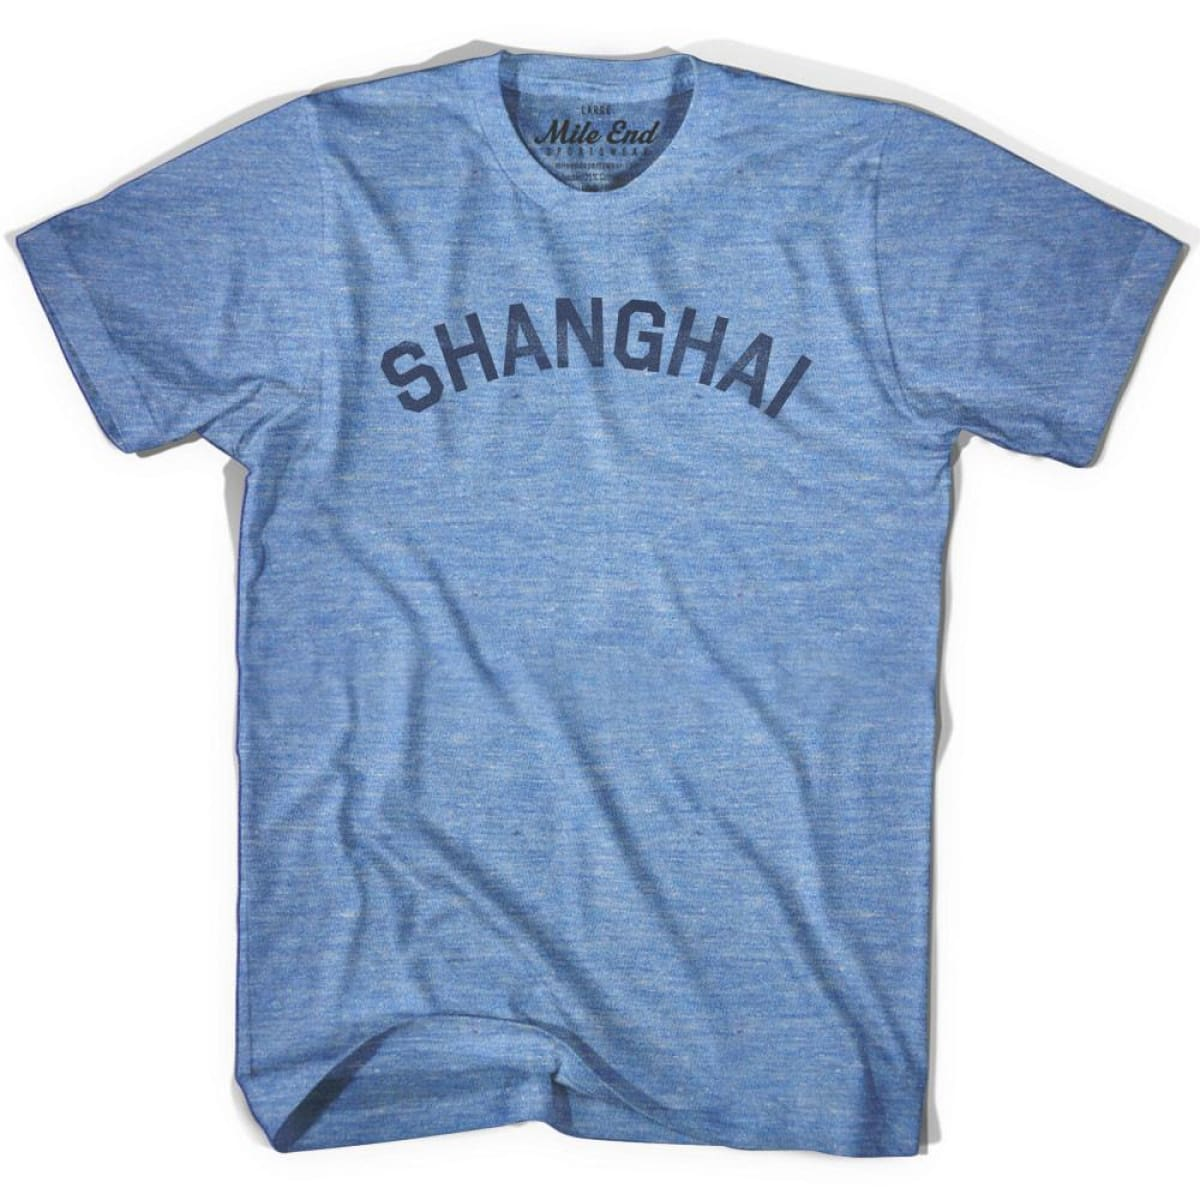 Shanghai City Vintage T-shirt - Athletic Blue / Adult X-Small - Mile End City